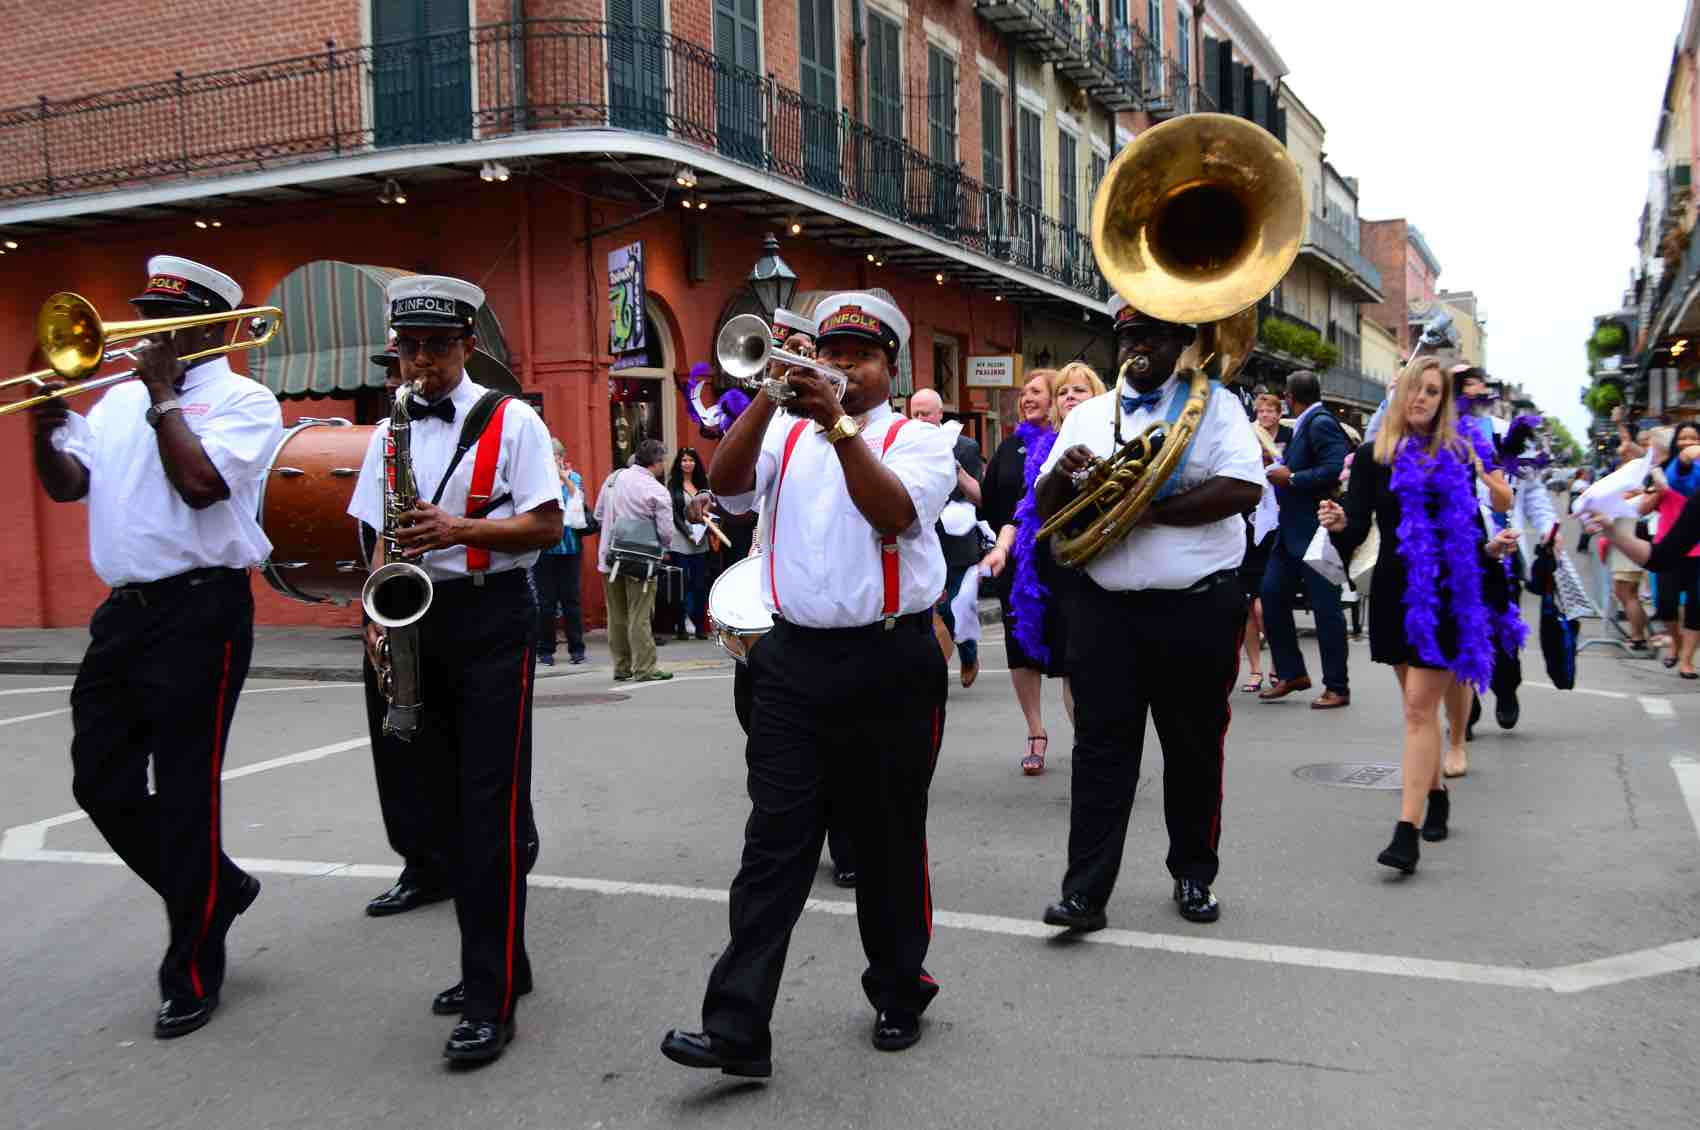 A group of musicians form a Second Line parade as they march through the French Quarter of New Orleans, Louisiana